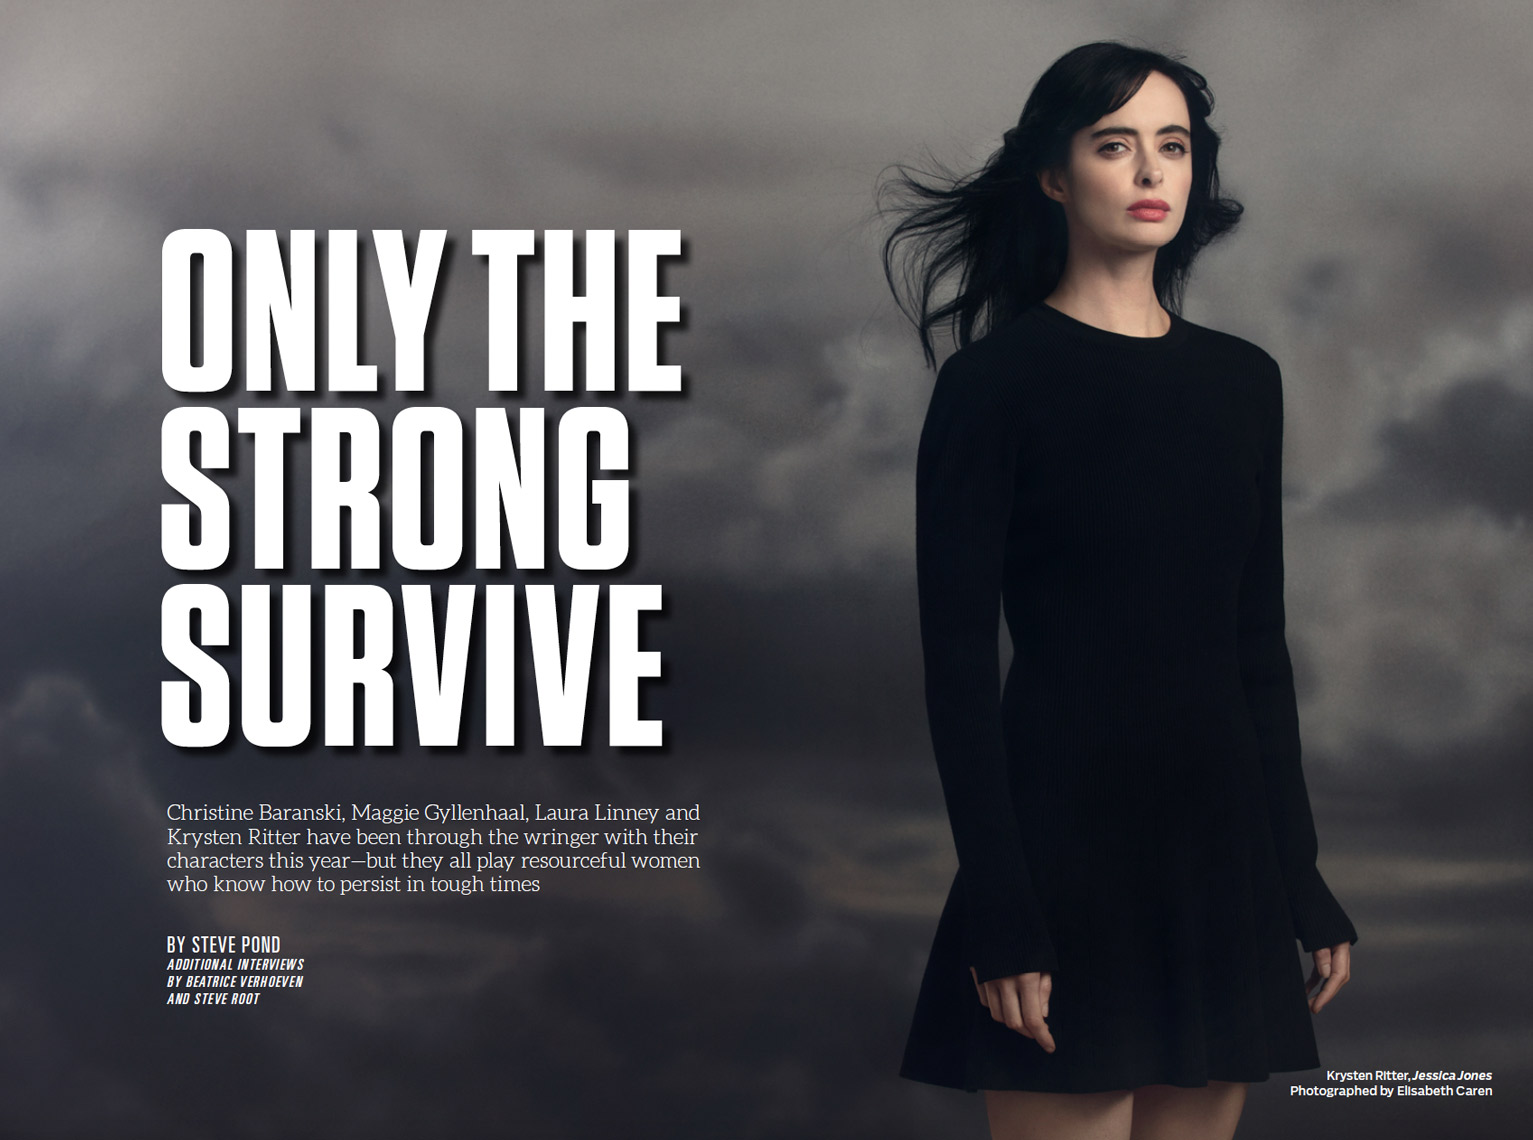 KRYSTEN-RITTER-THE-WRAP-tear-sheet